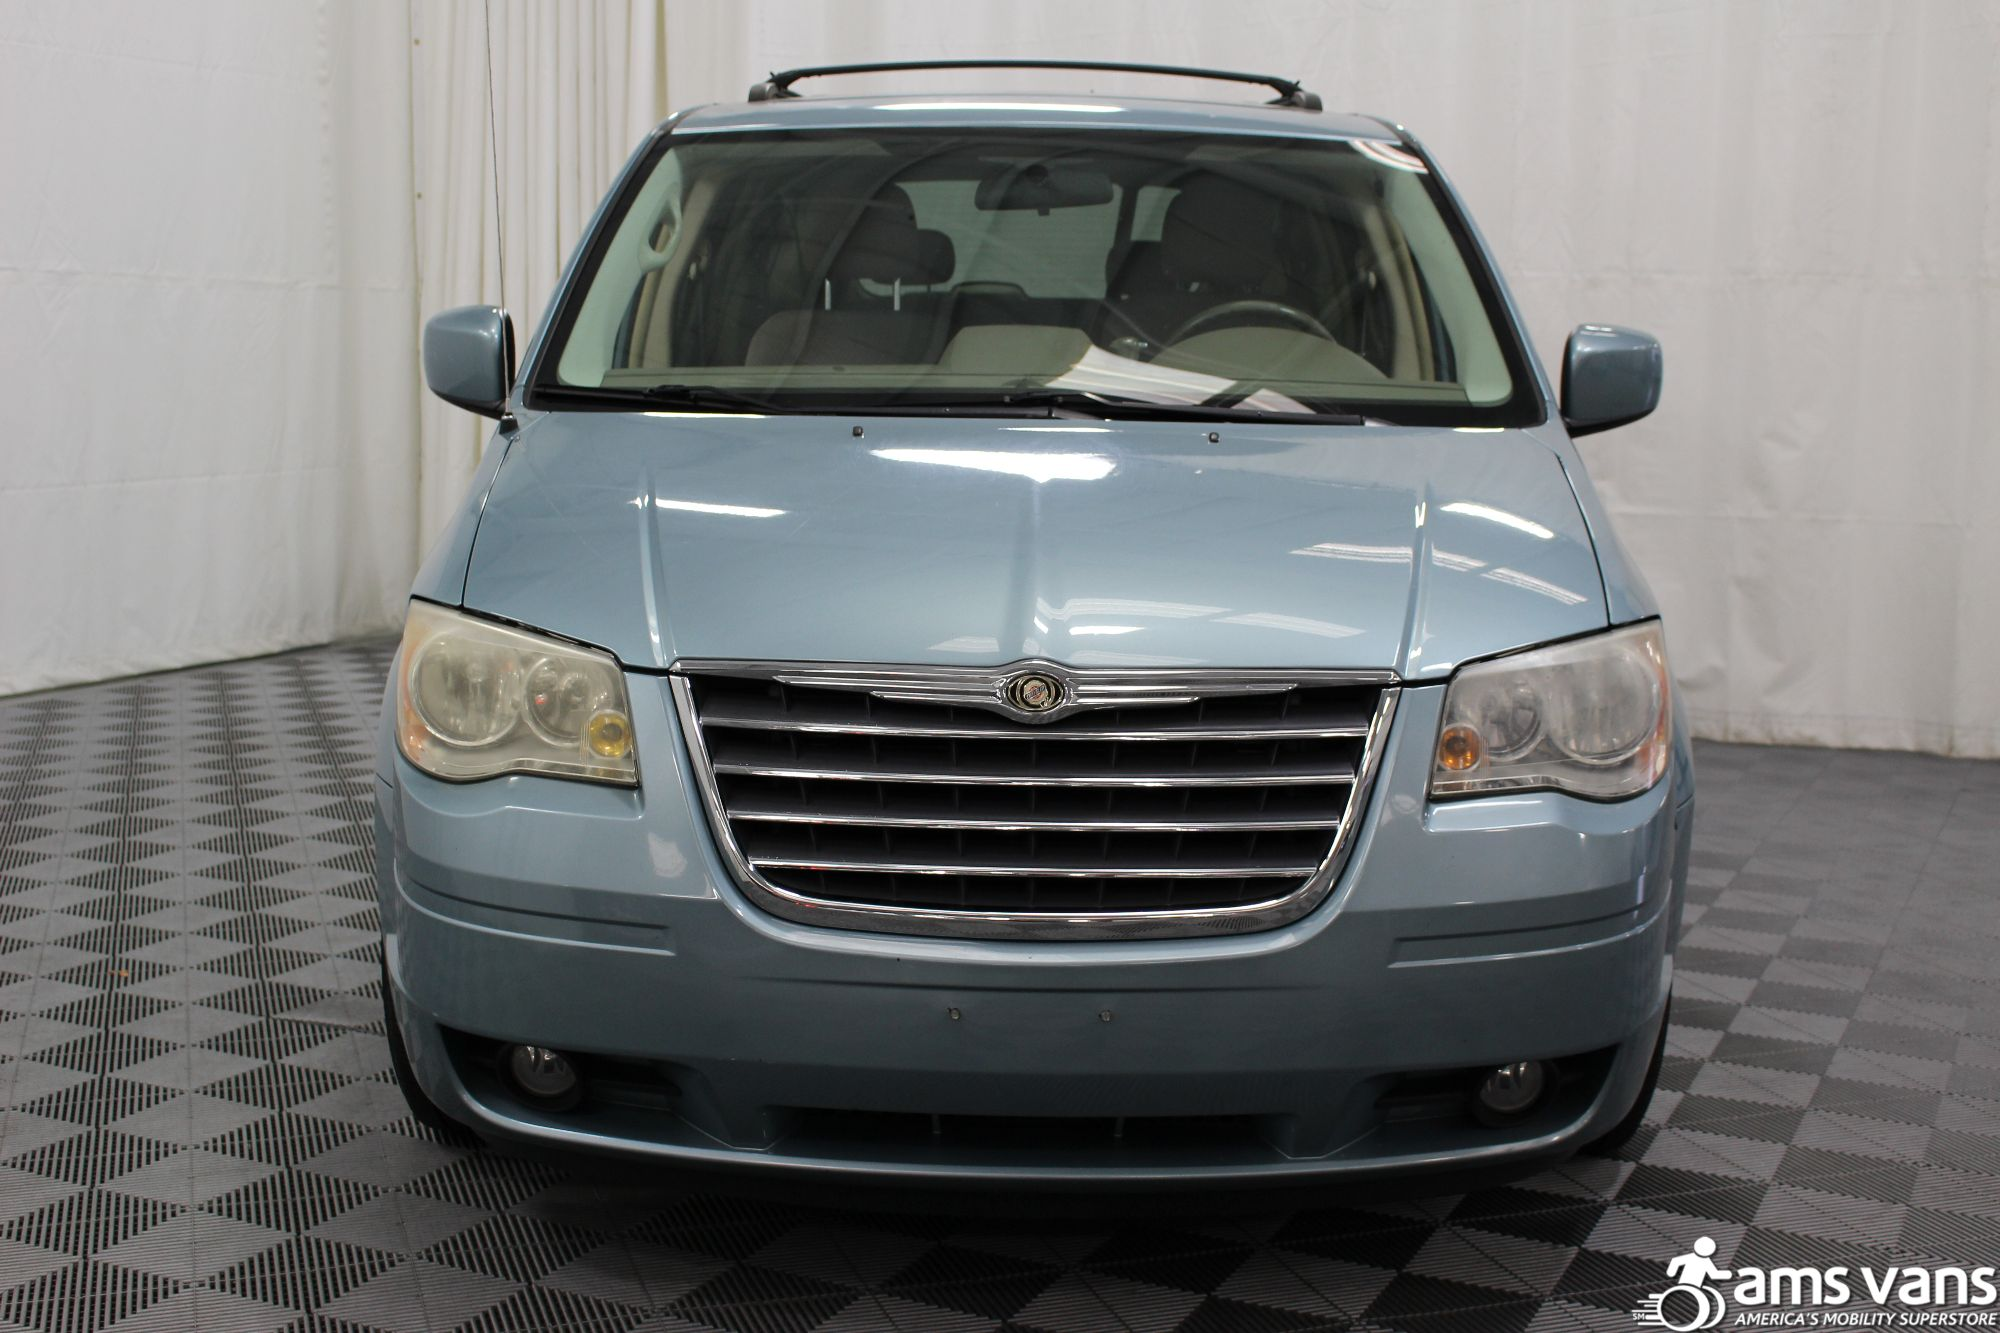 2010 chrysler town and country wheelchair van for sale 25 695. Black Bedroom Furniture Sets. Home Design Ideas